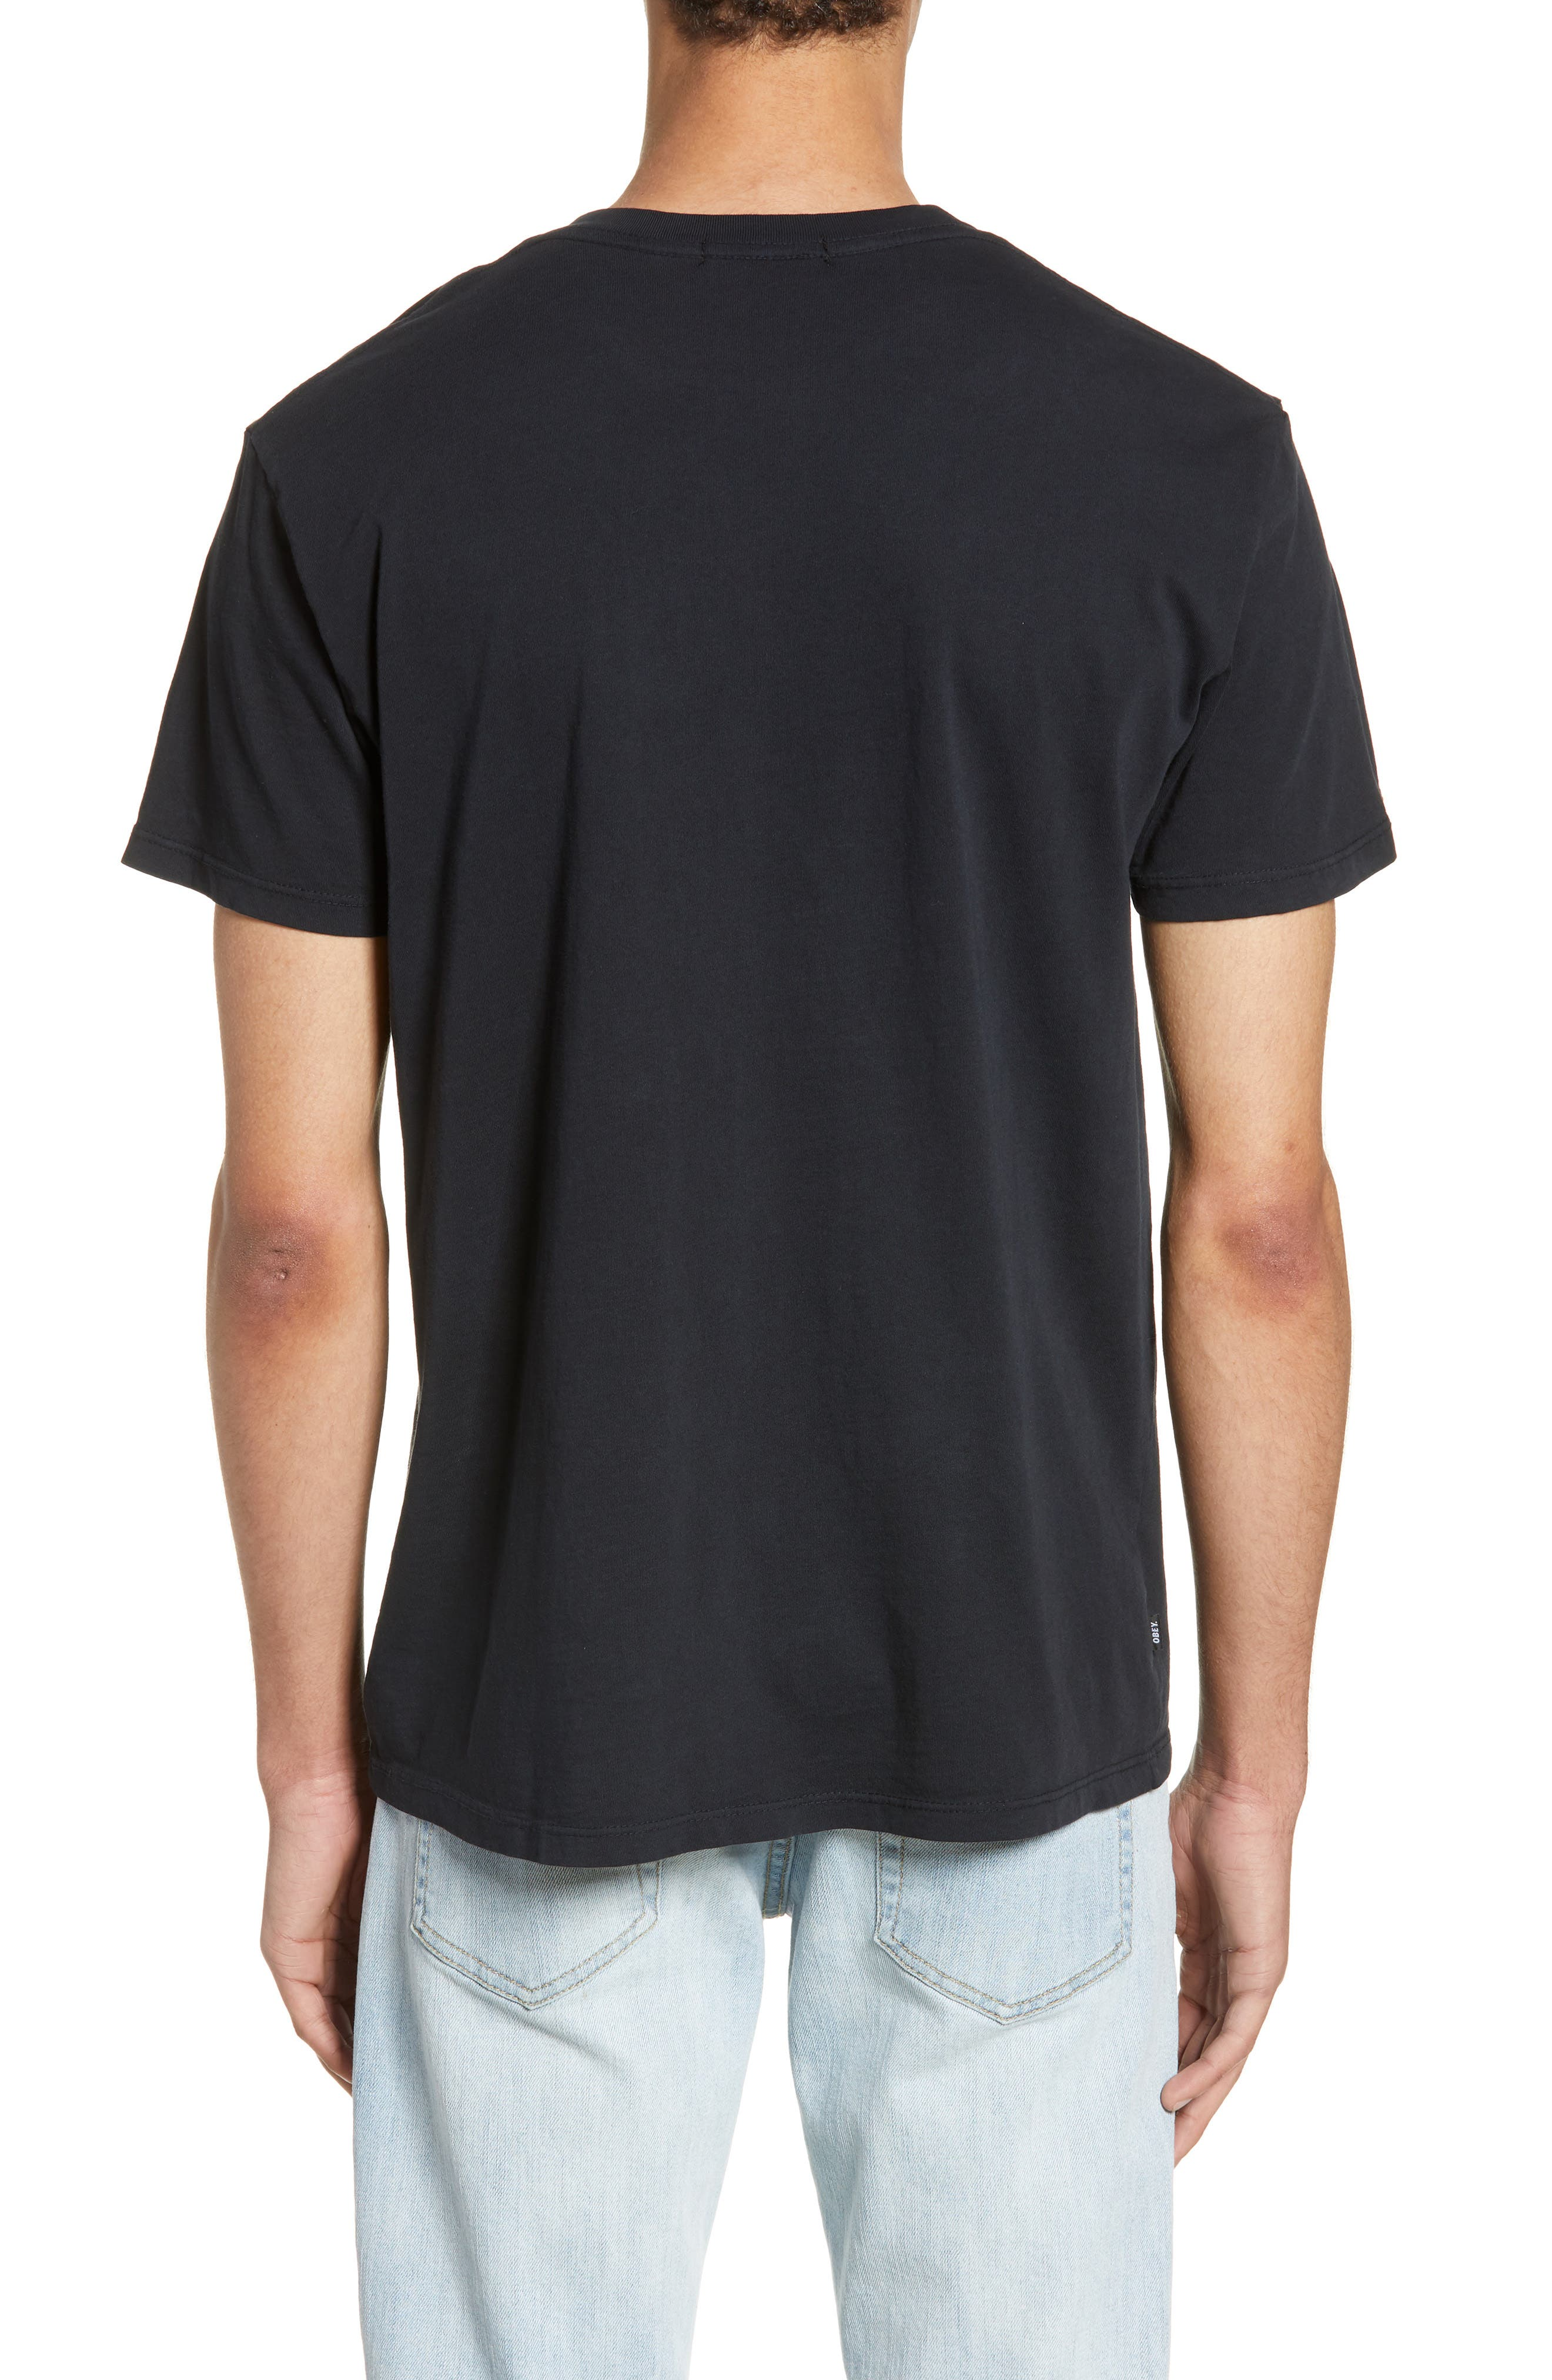 503586412 Men's Obey T-Shirts, Tank Tops, & Graphic Tees   Nordstrom